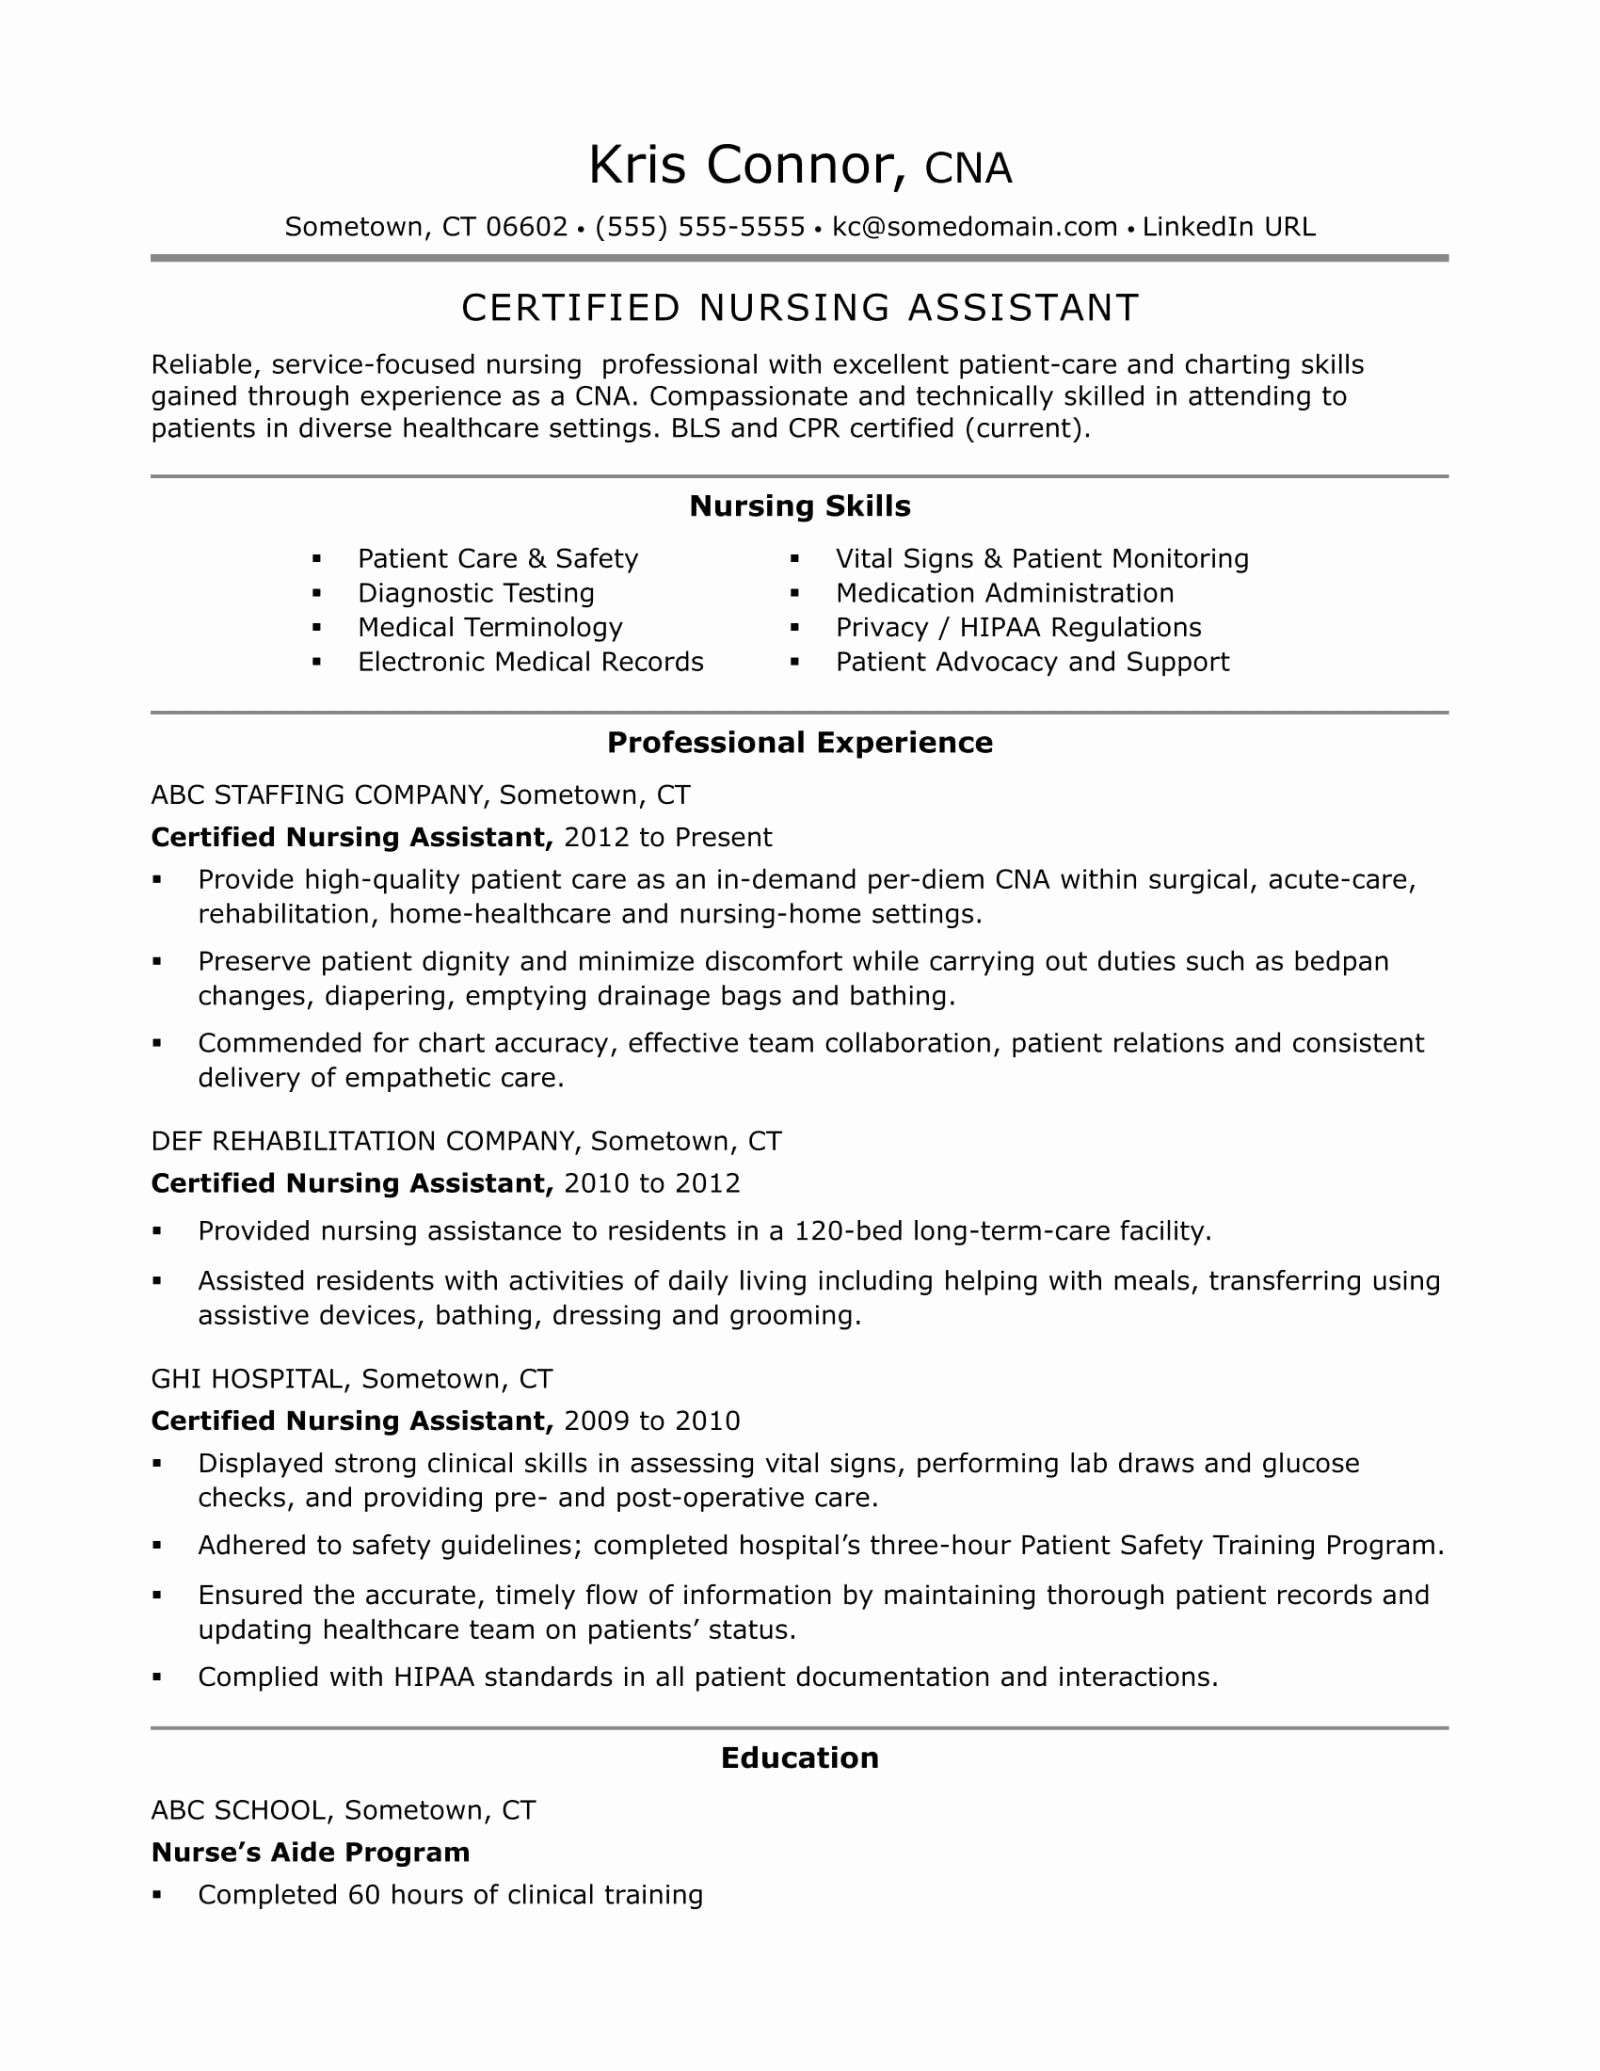 Professional Business Cards Templates Business Plan Professional Template Unique Template For Medical Assistant Resume Resume Skills Good Resume Examples